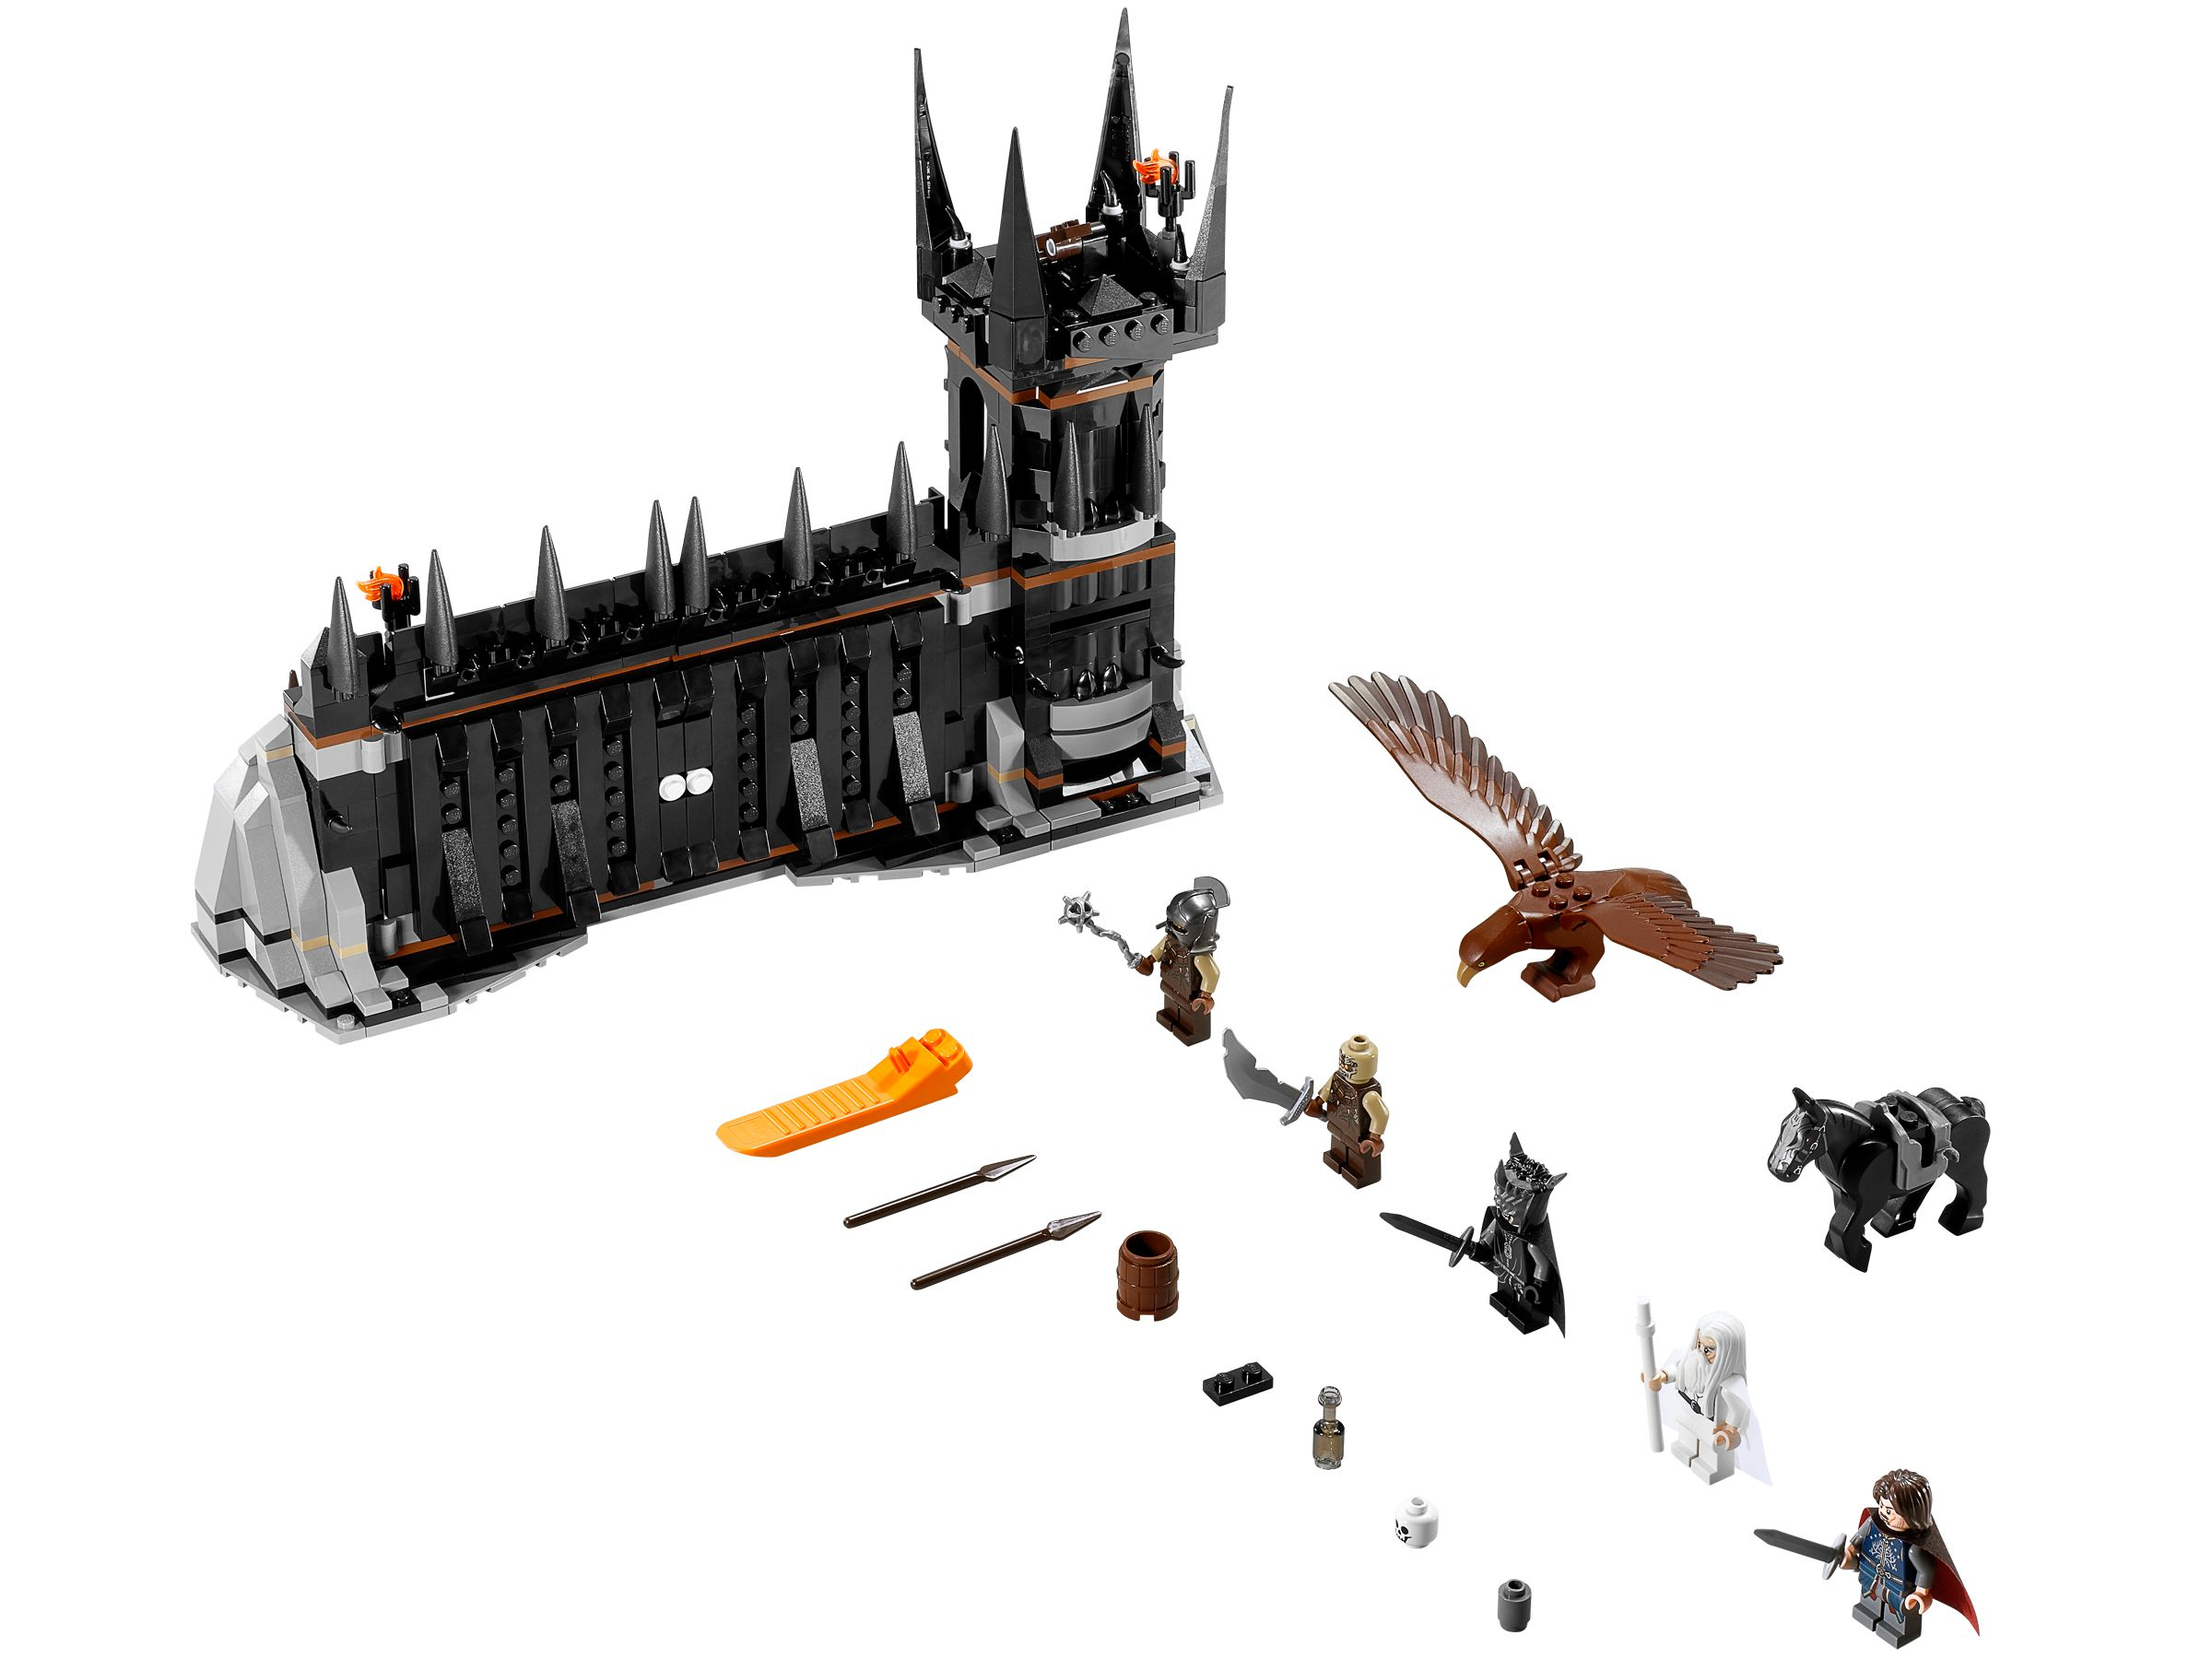 LEGO Lord of the Rings 79007 Die Schlacht am Schwarzen Tor LEGO_79007.jpg